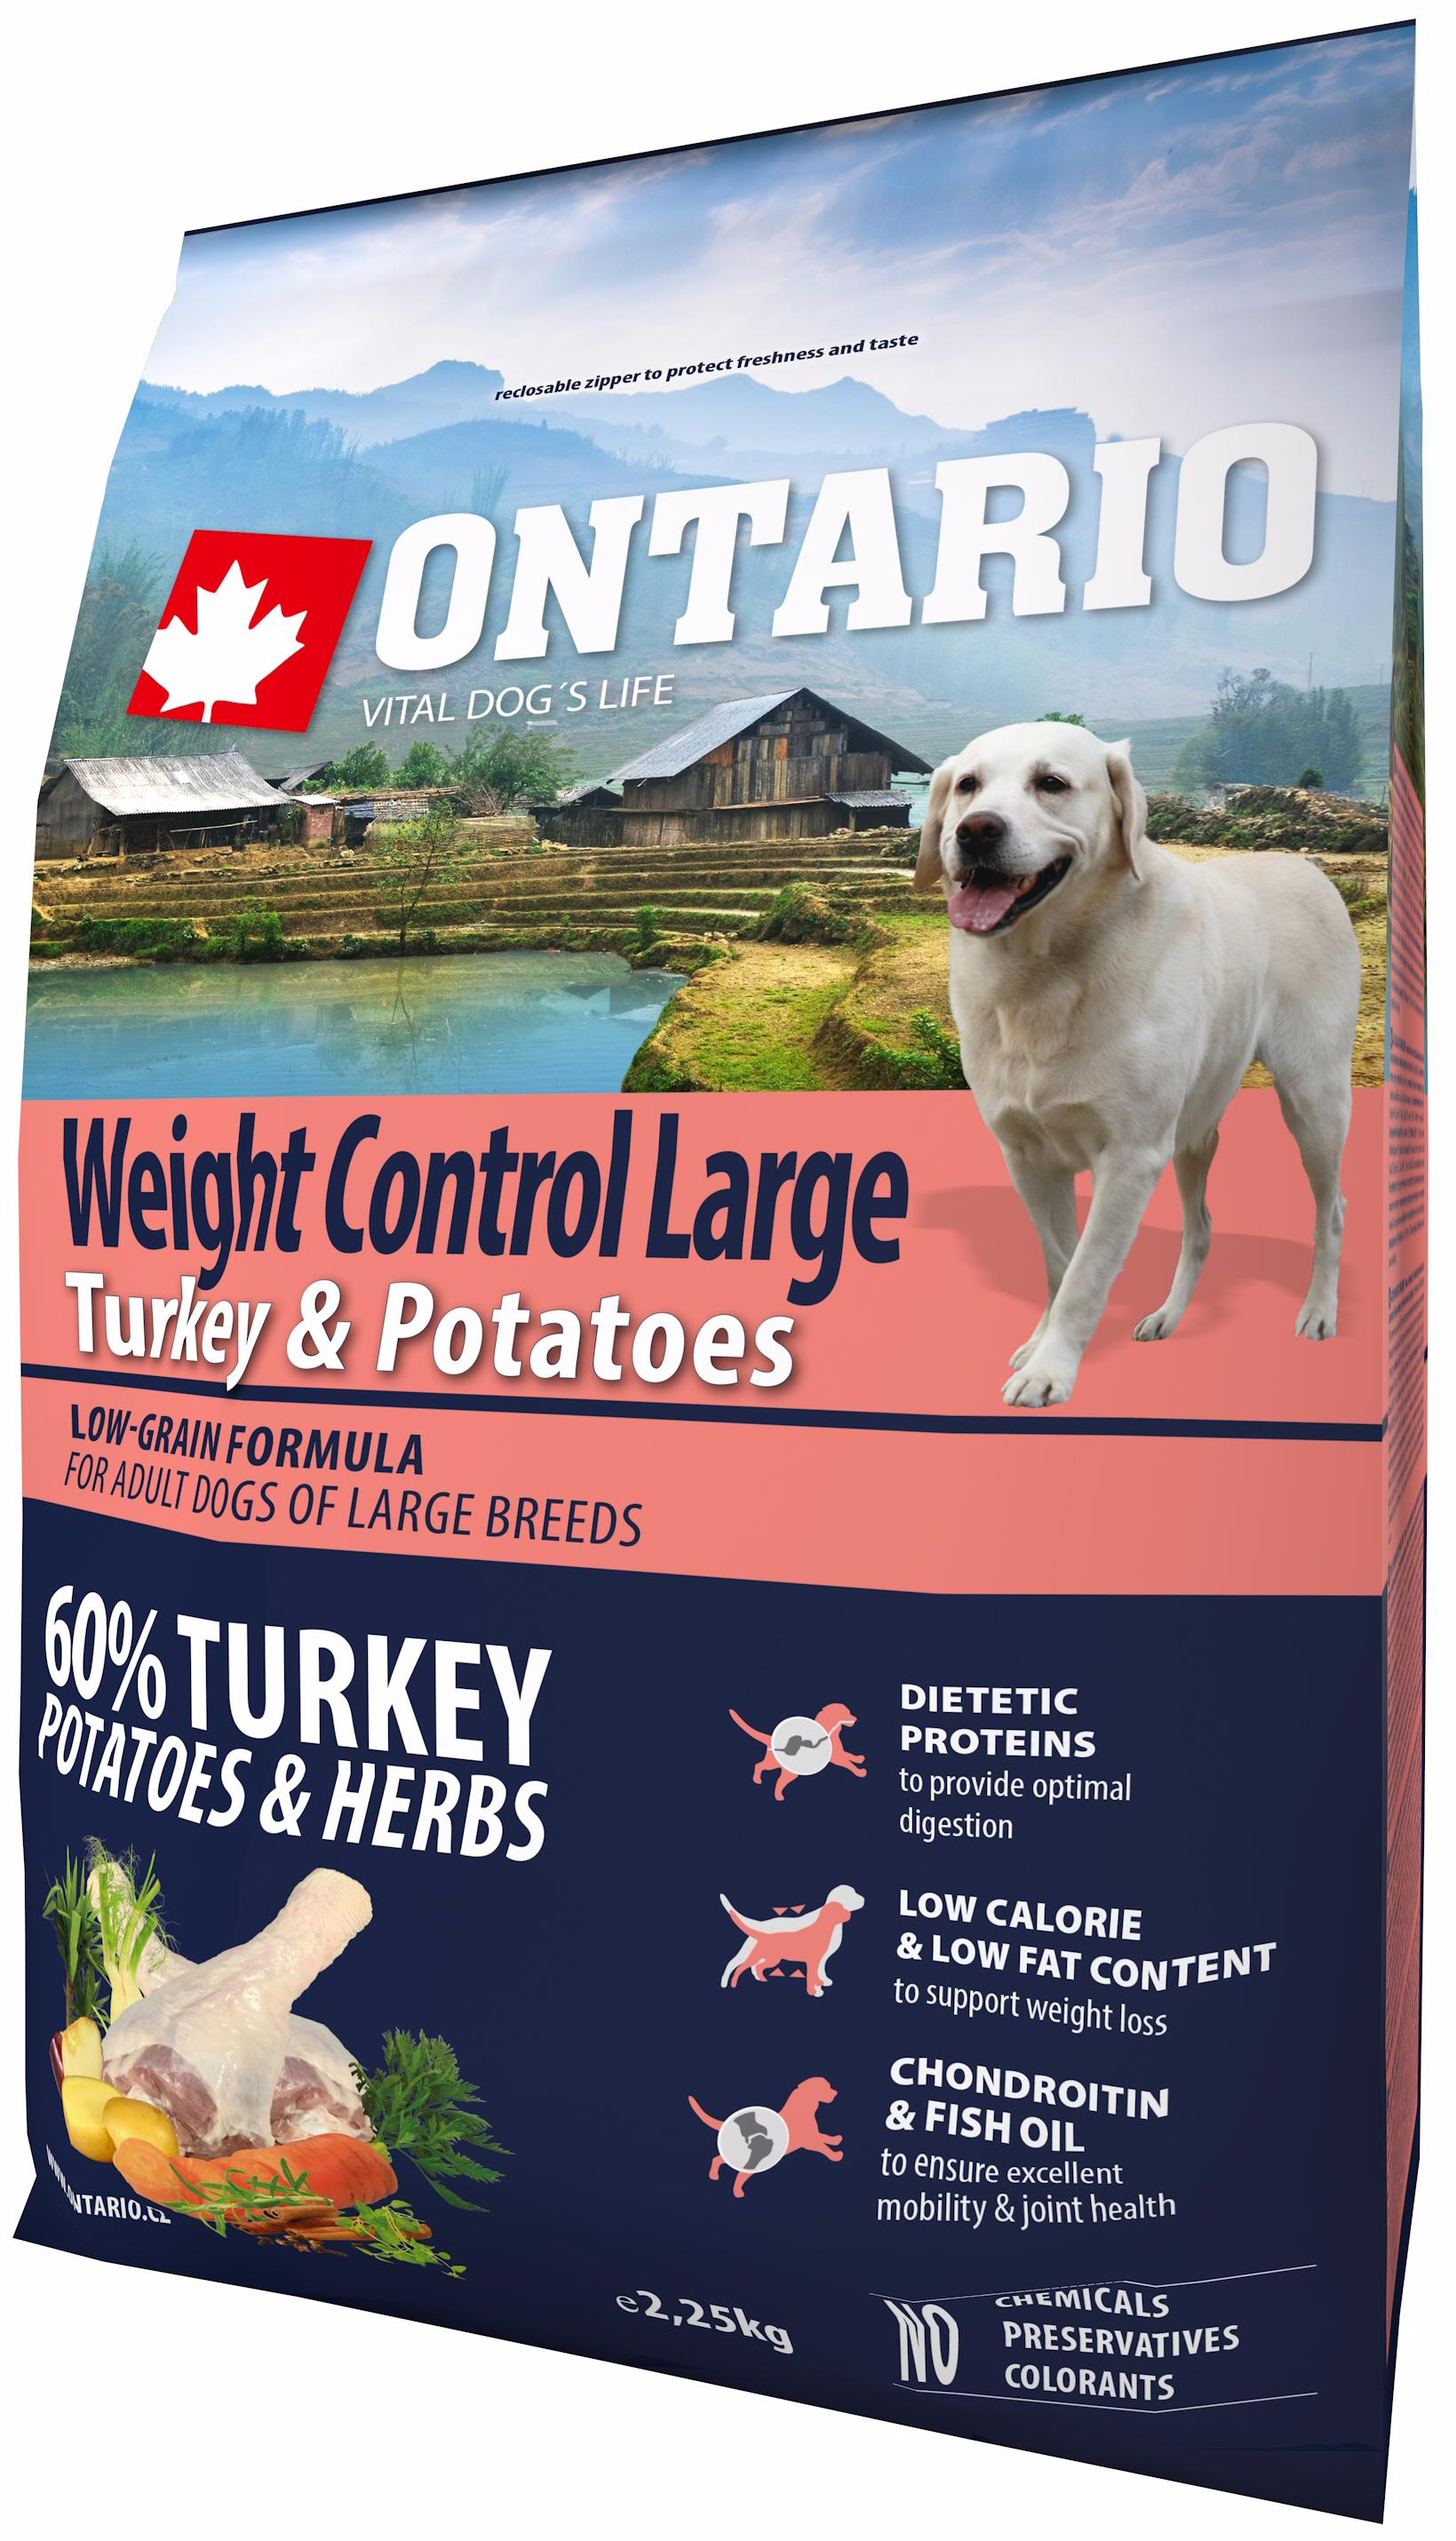 Ontario Weight Control Large turkey & potatoes